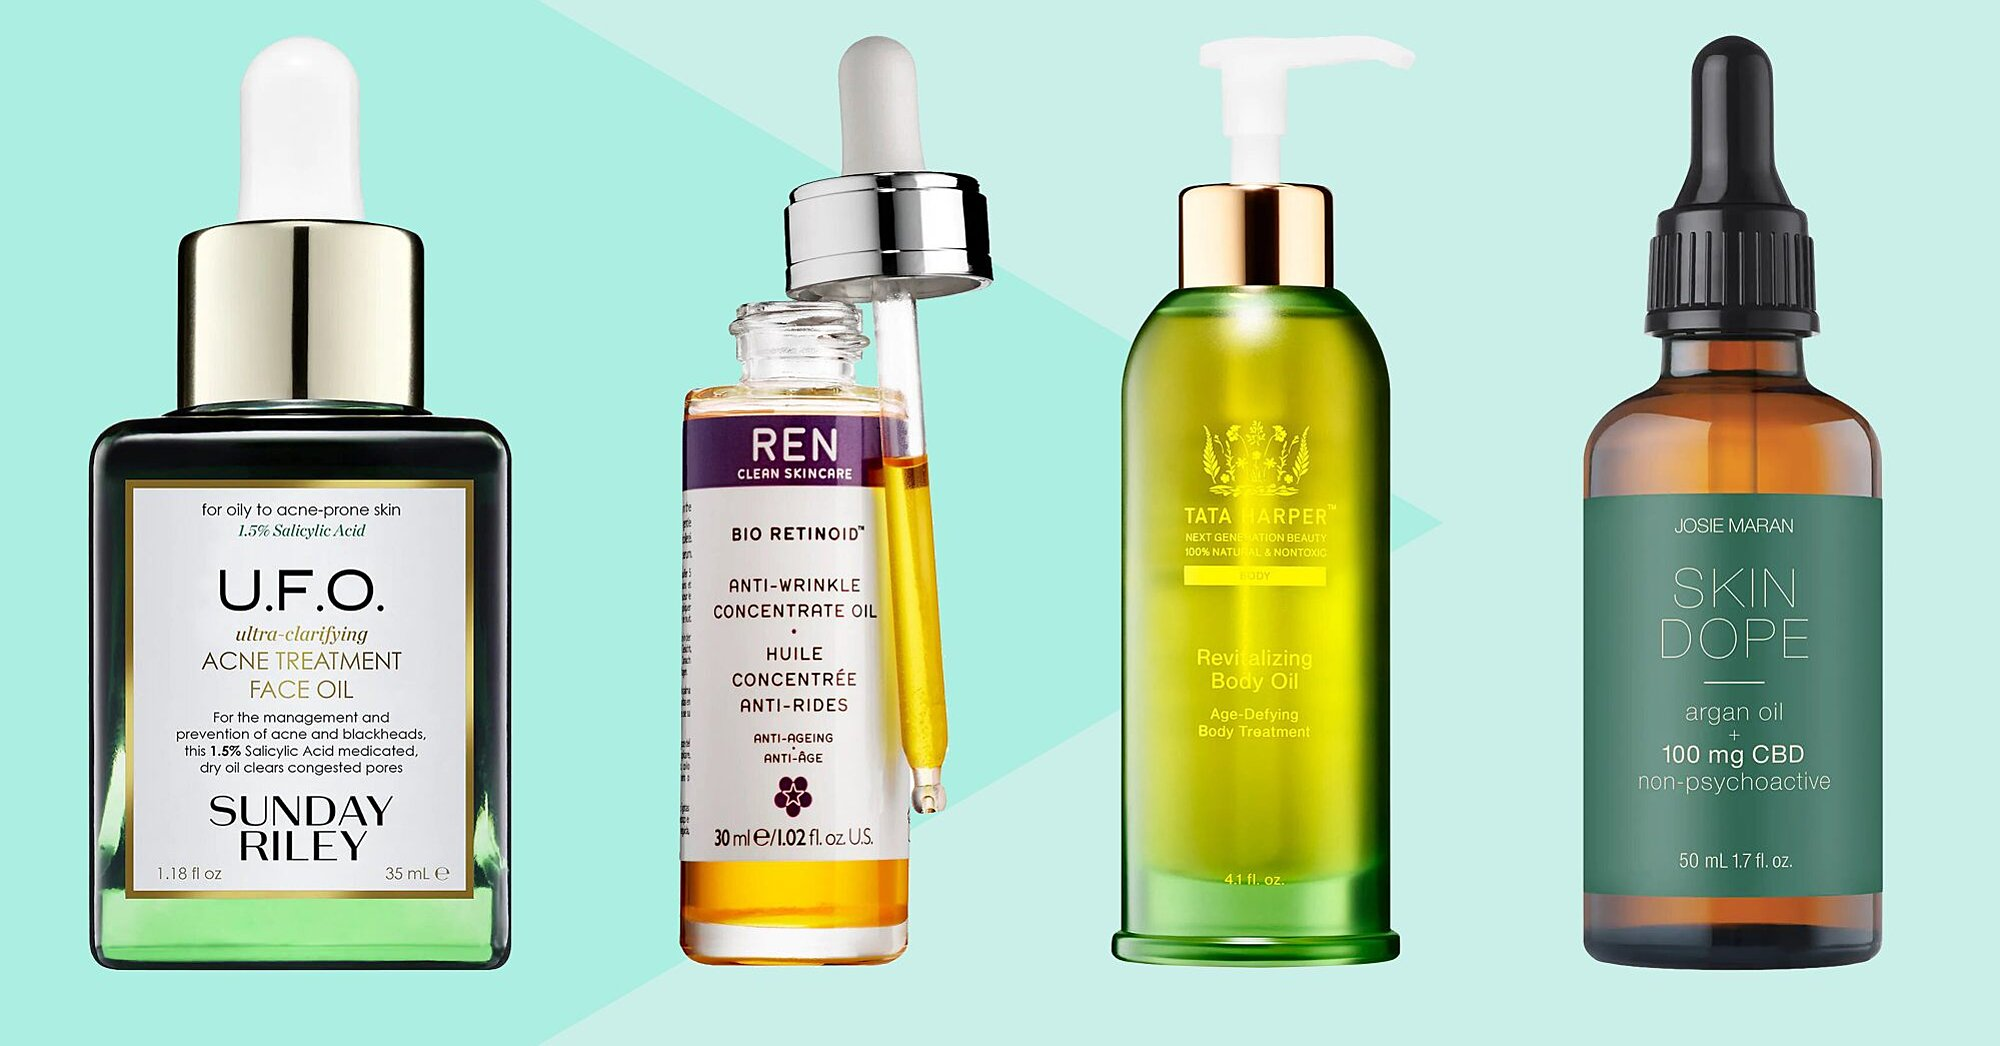 15 Anti-Aging Face Oils That Actually Work, According to Thousands of Beauty Lovers